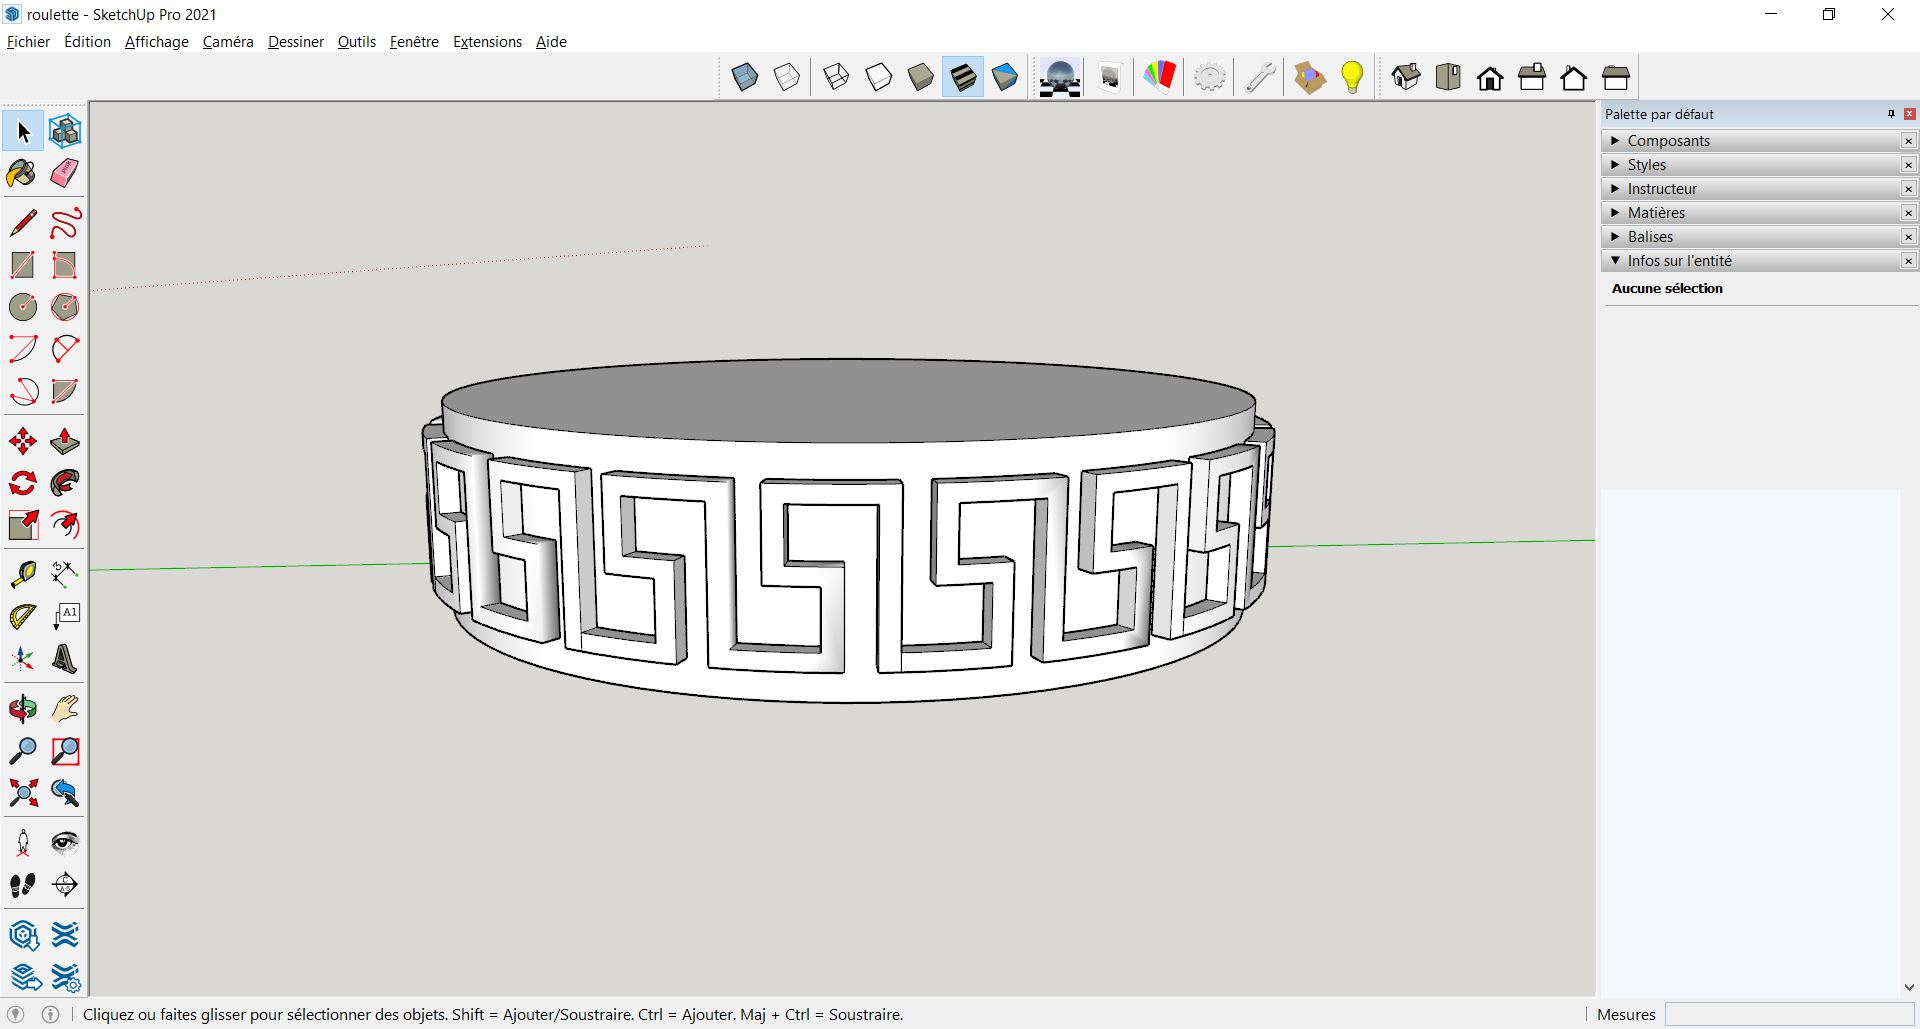 Sketchup-roulette-2